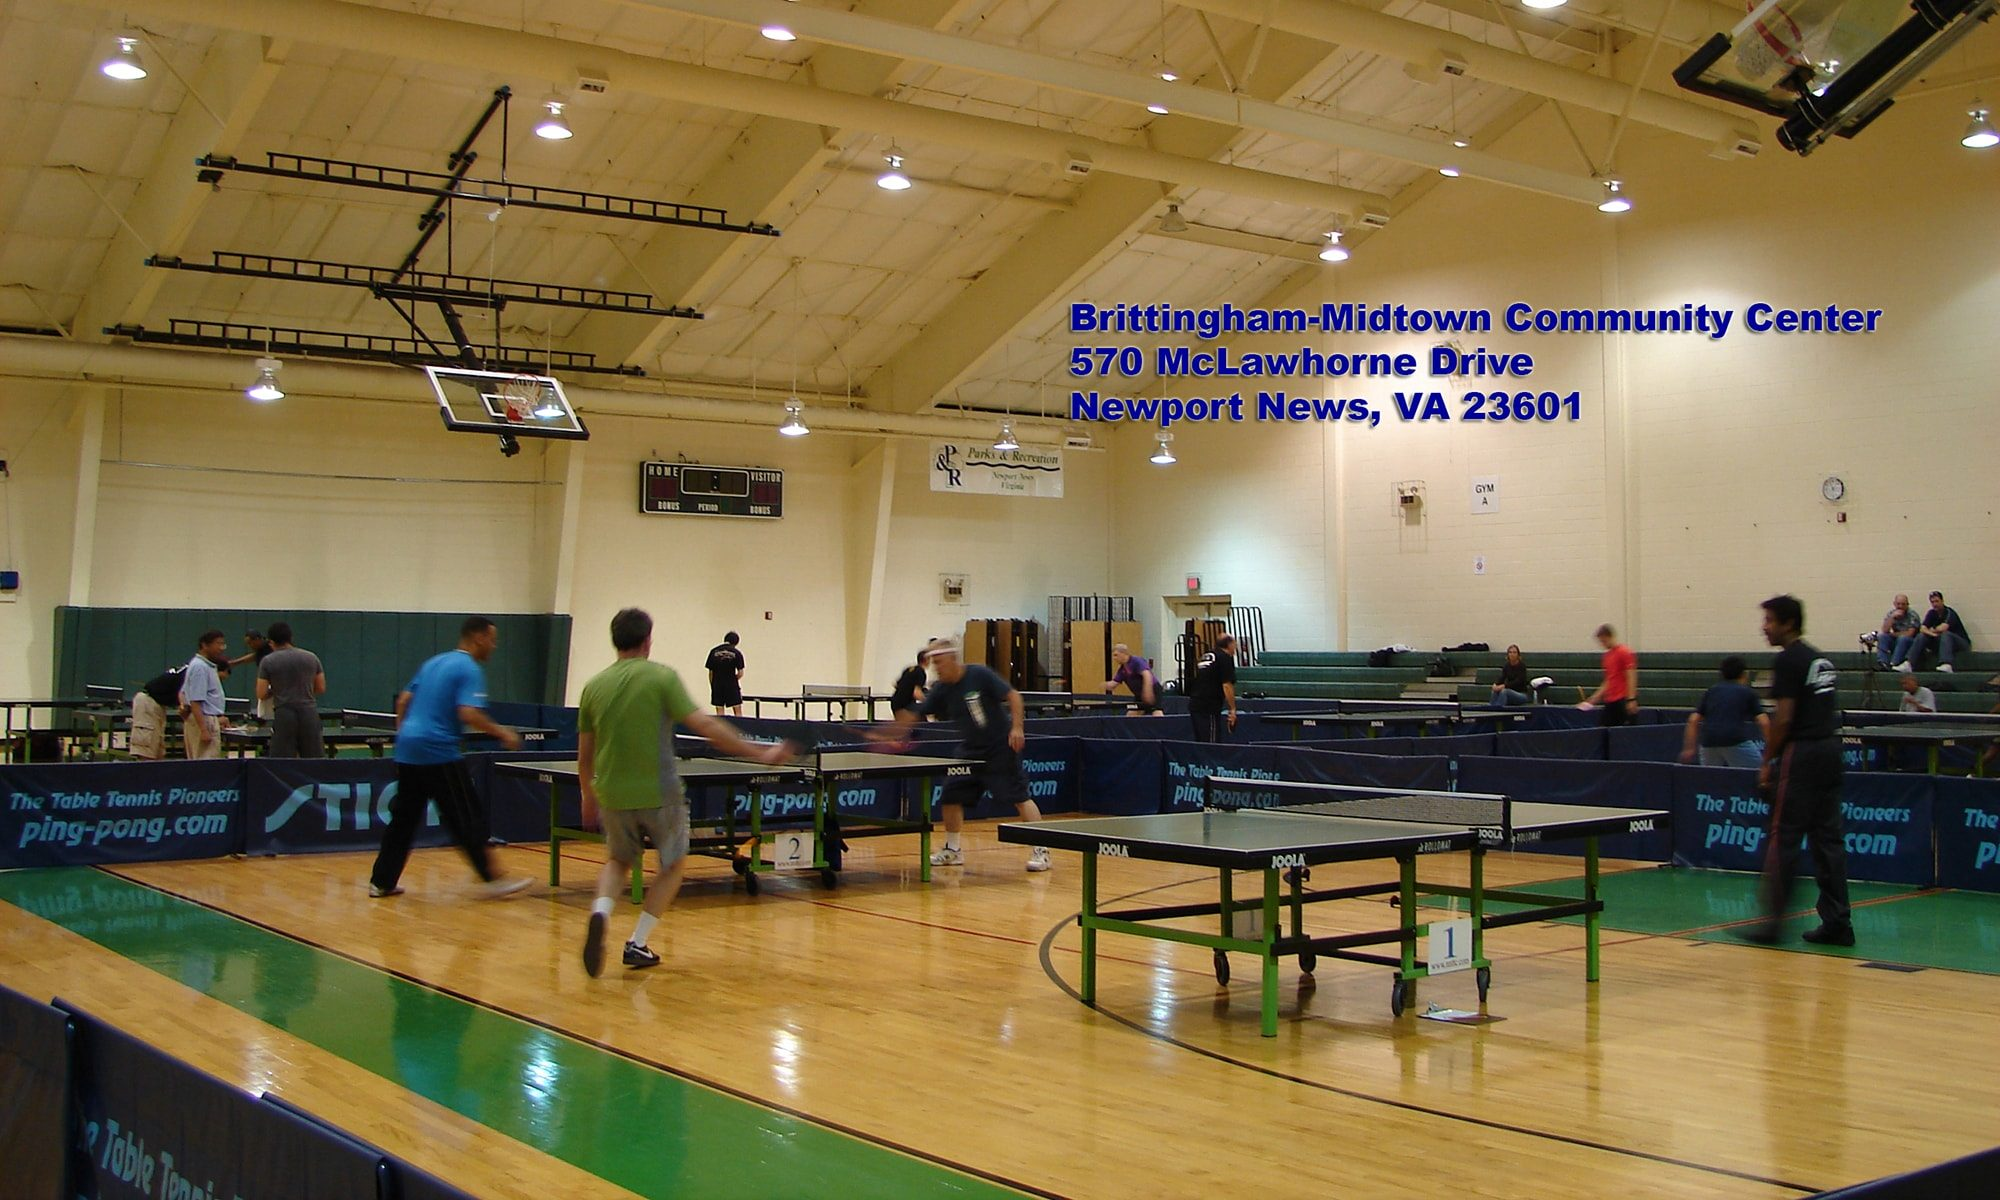 Newport News Table Tennis Club